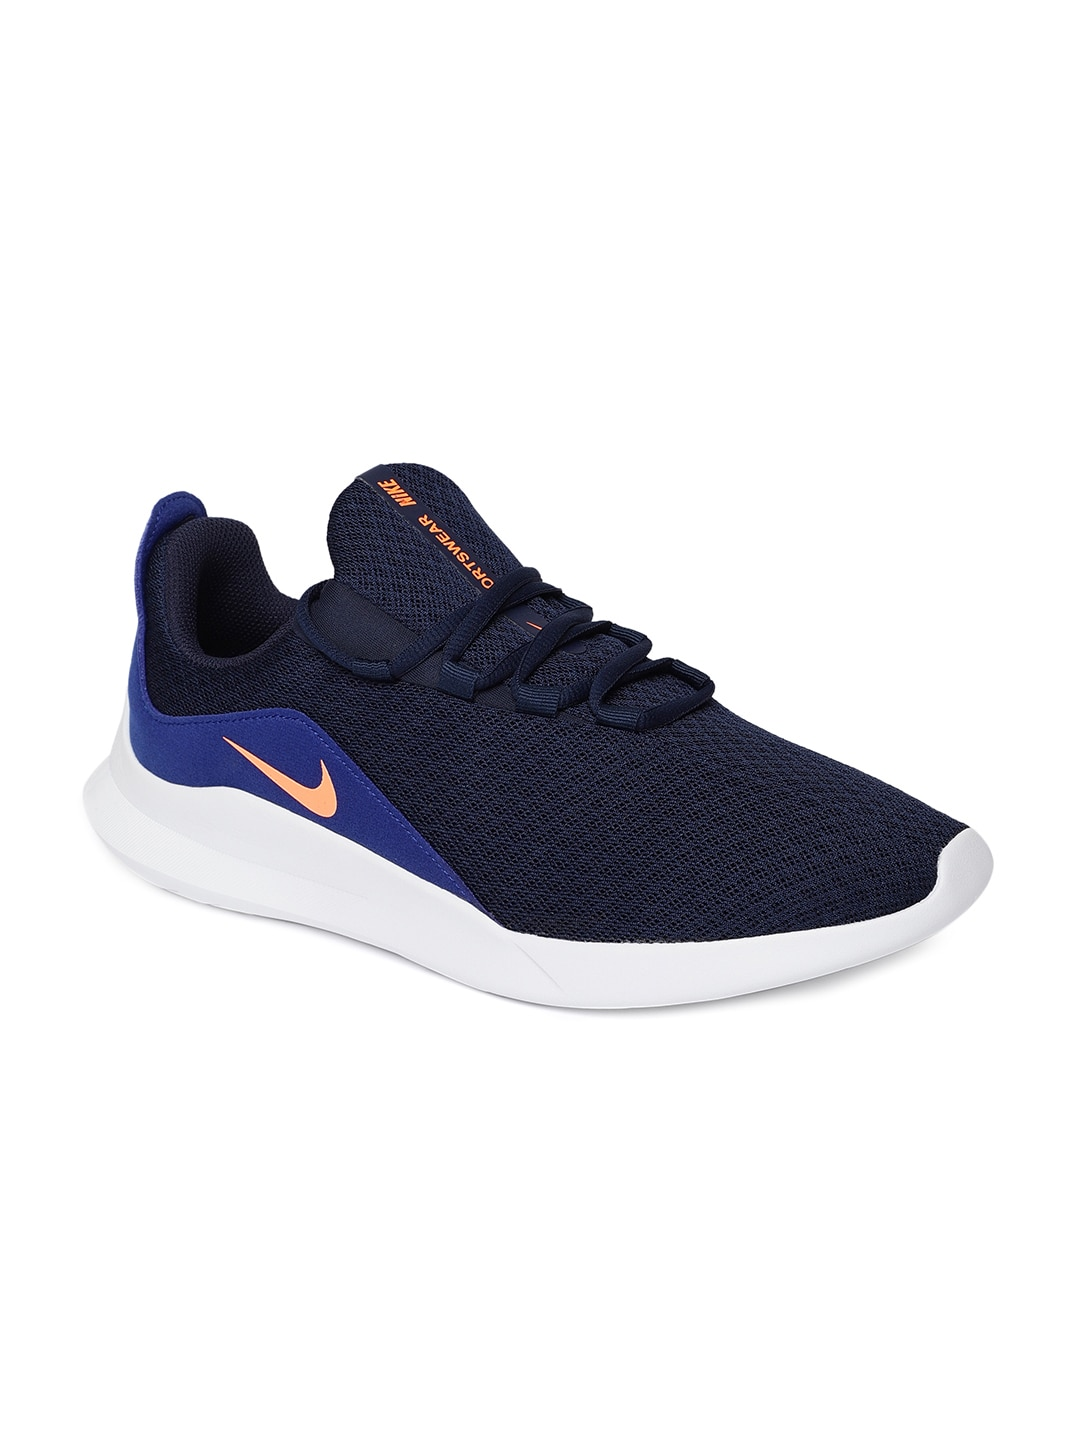 42767c0c3d2d Sports Shoes for Men - Buy Men Sports Shoes Online in India - Myntra